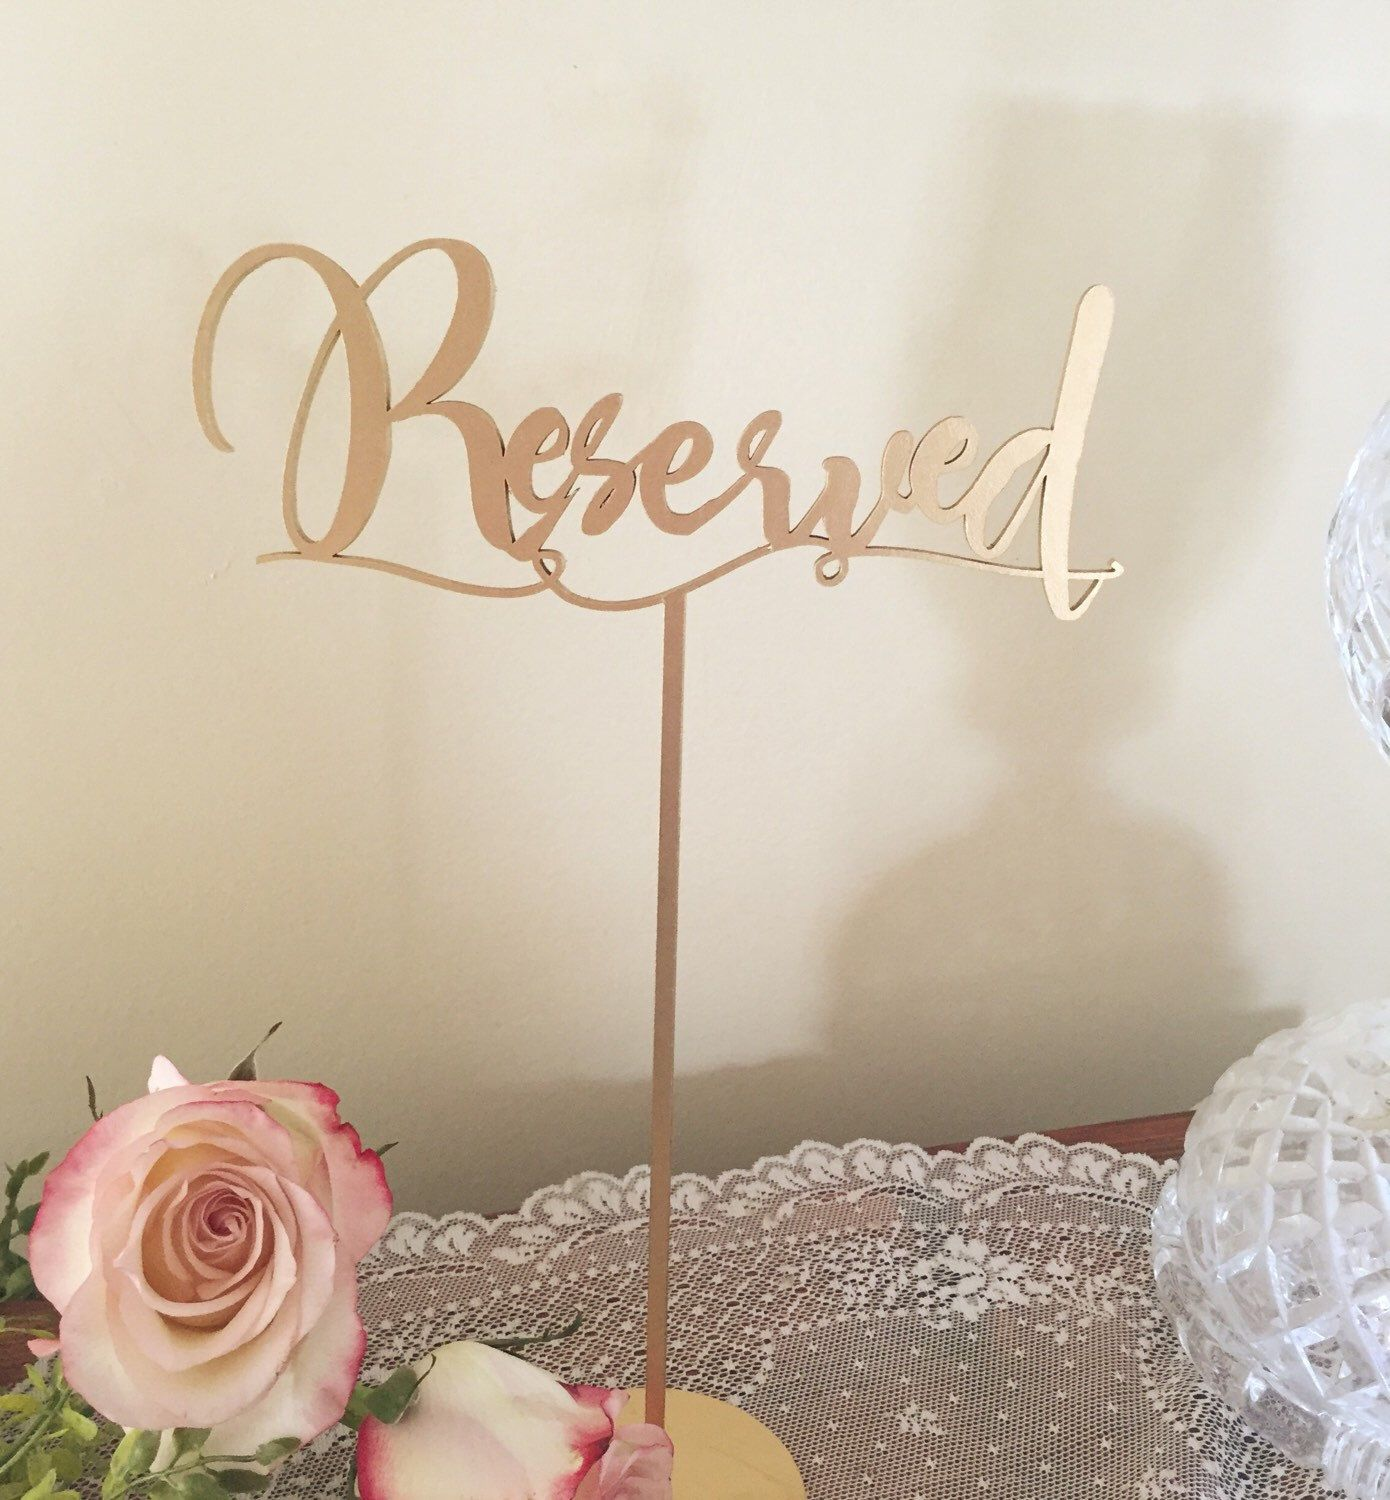 10 Reserved Wedding Table Signs Total Of Gold Silver Diy Garden Line